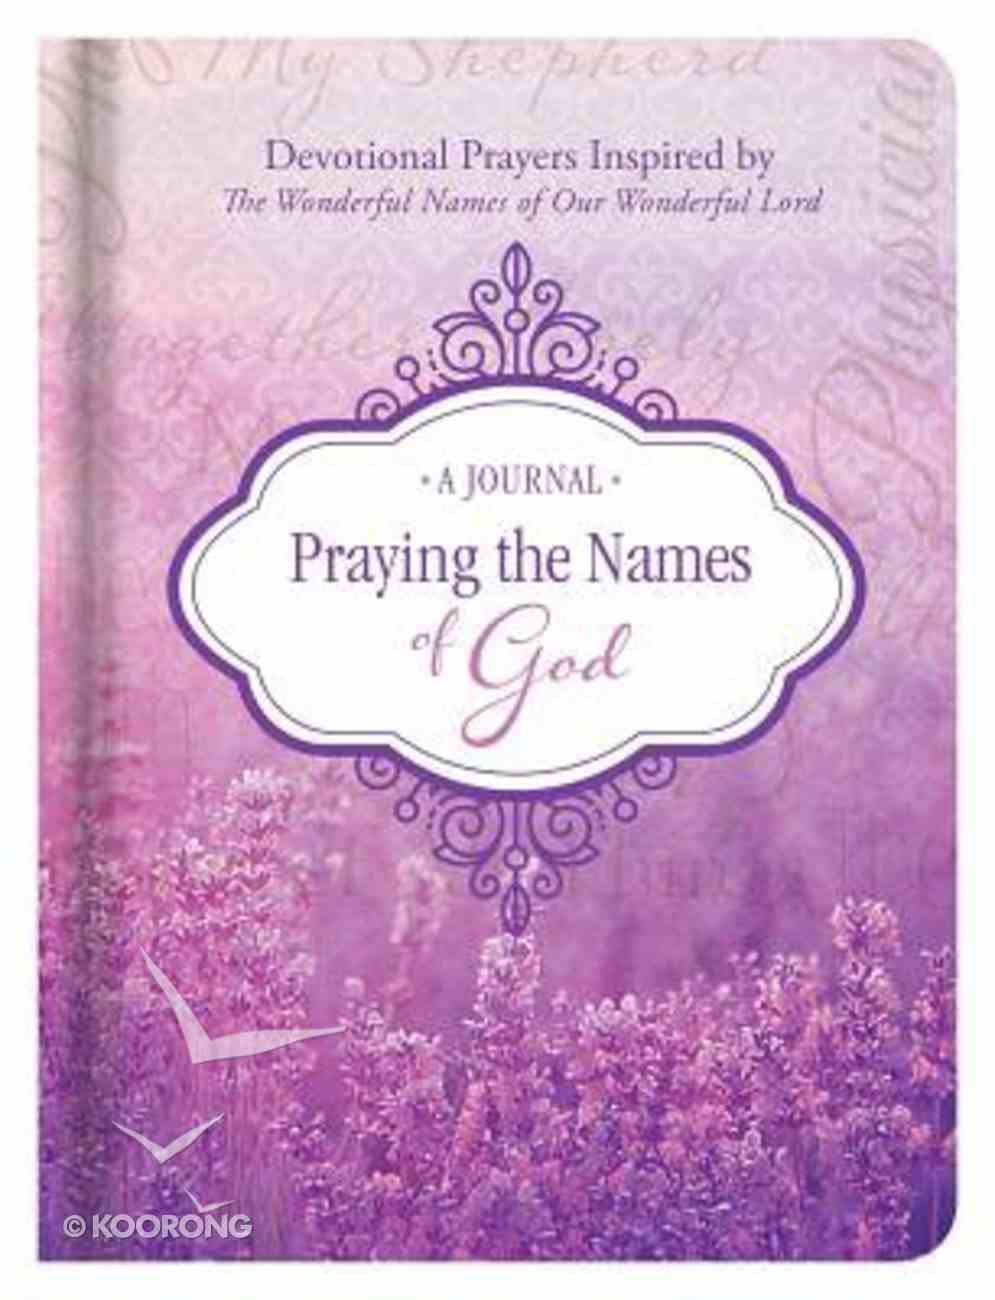 Praying the Names of God Journal: Devotional Prayers Inspired By the Wonderful Names of Our Wonderful Lord Hardback